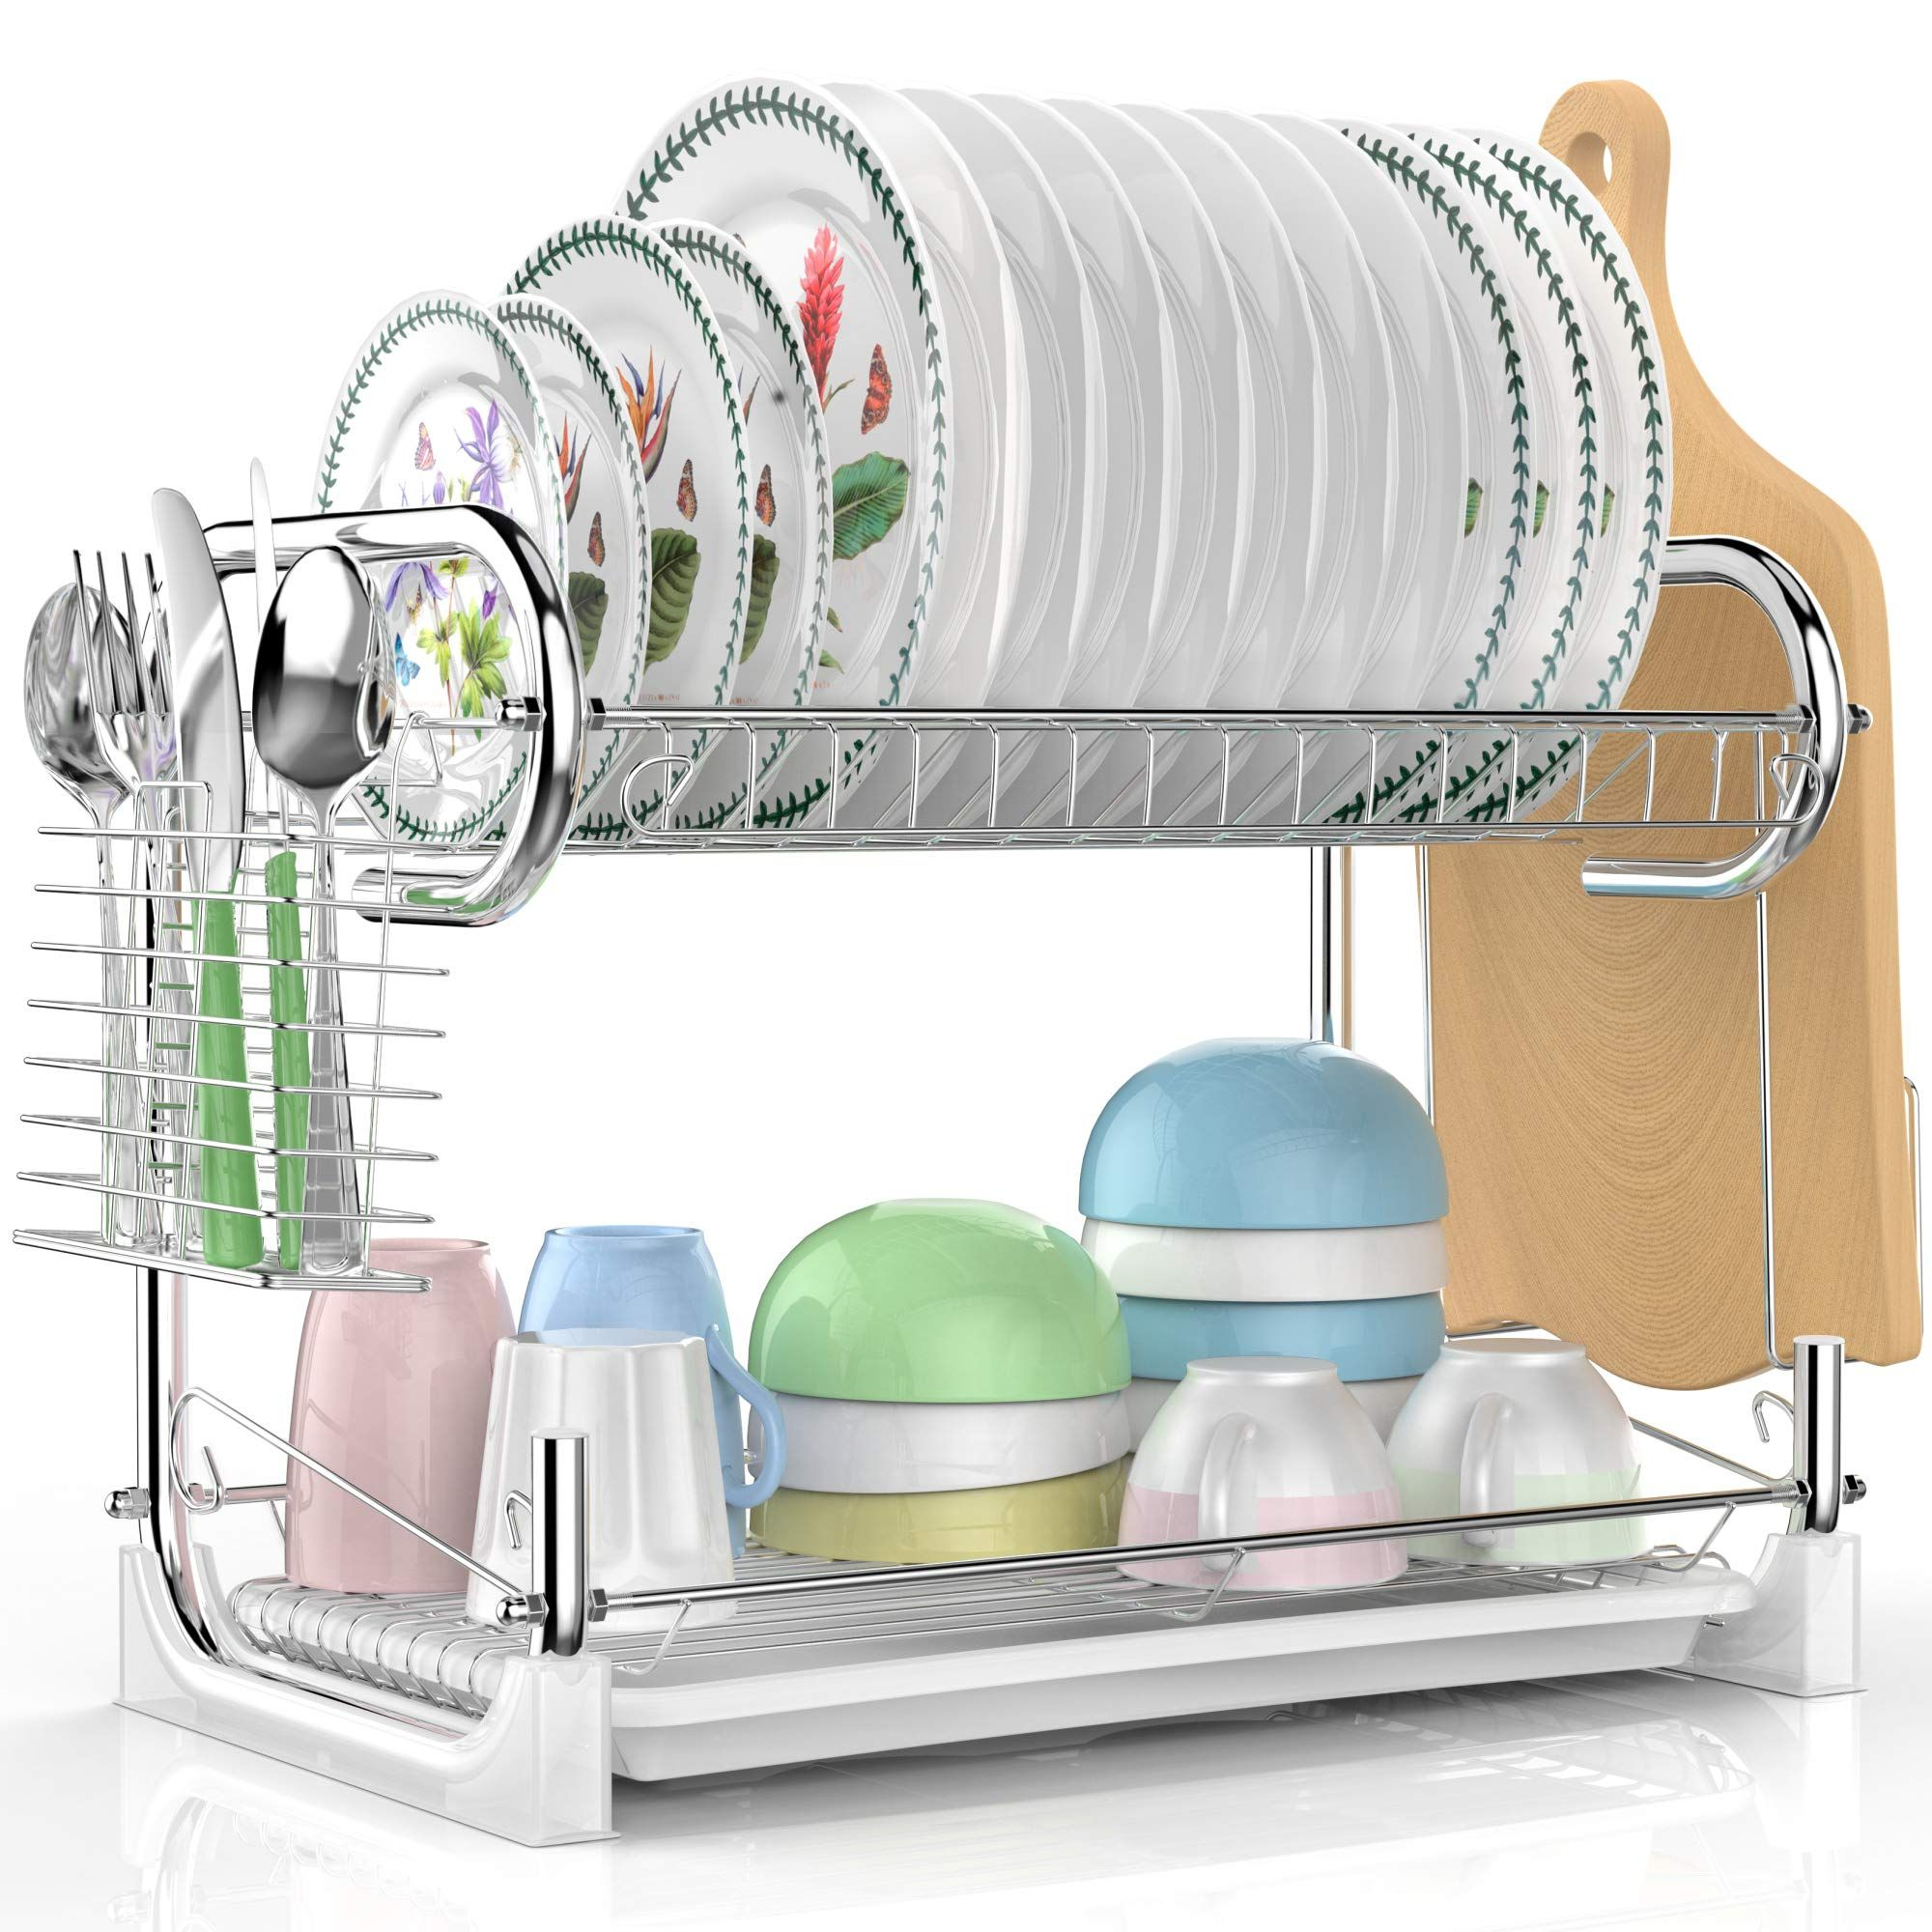 Dish Drying Rack Veckle 2 Tier Dish Drainer Easy Install Nonslip